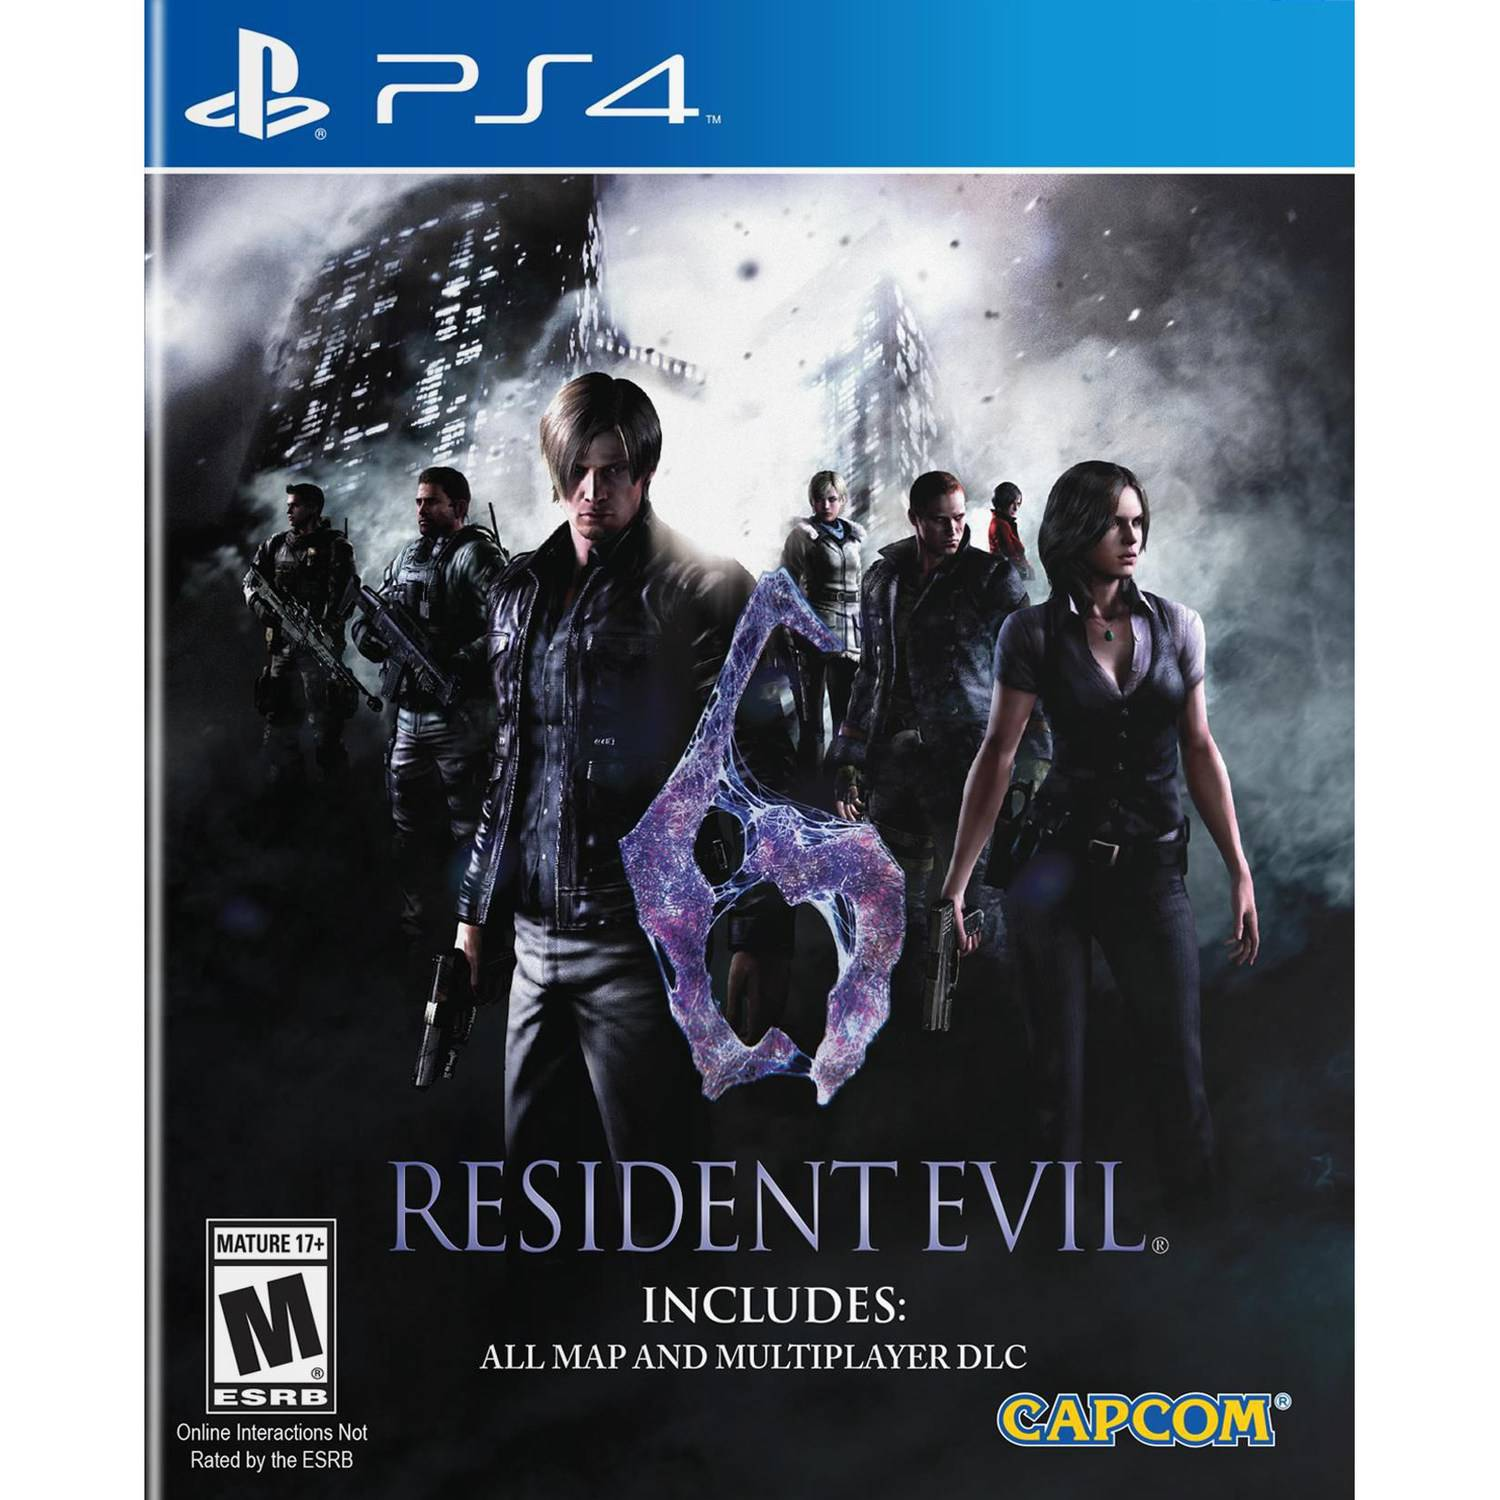 Resident Evil 6 HD for PlayStation 4 by Capcom CO., LTD